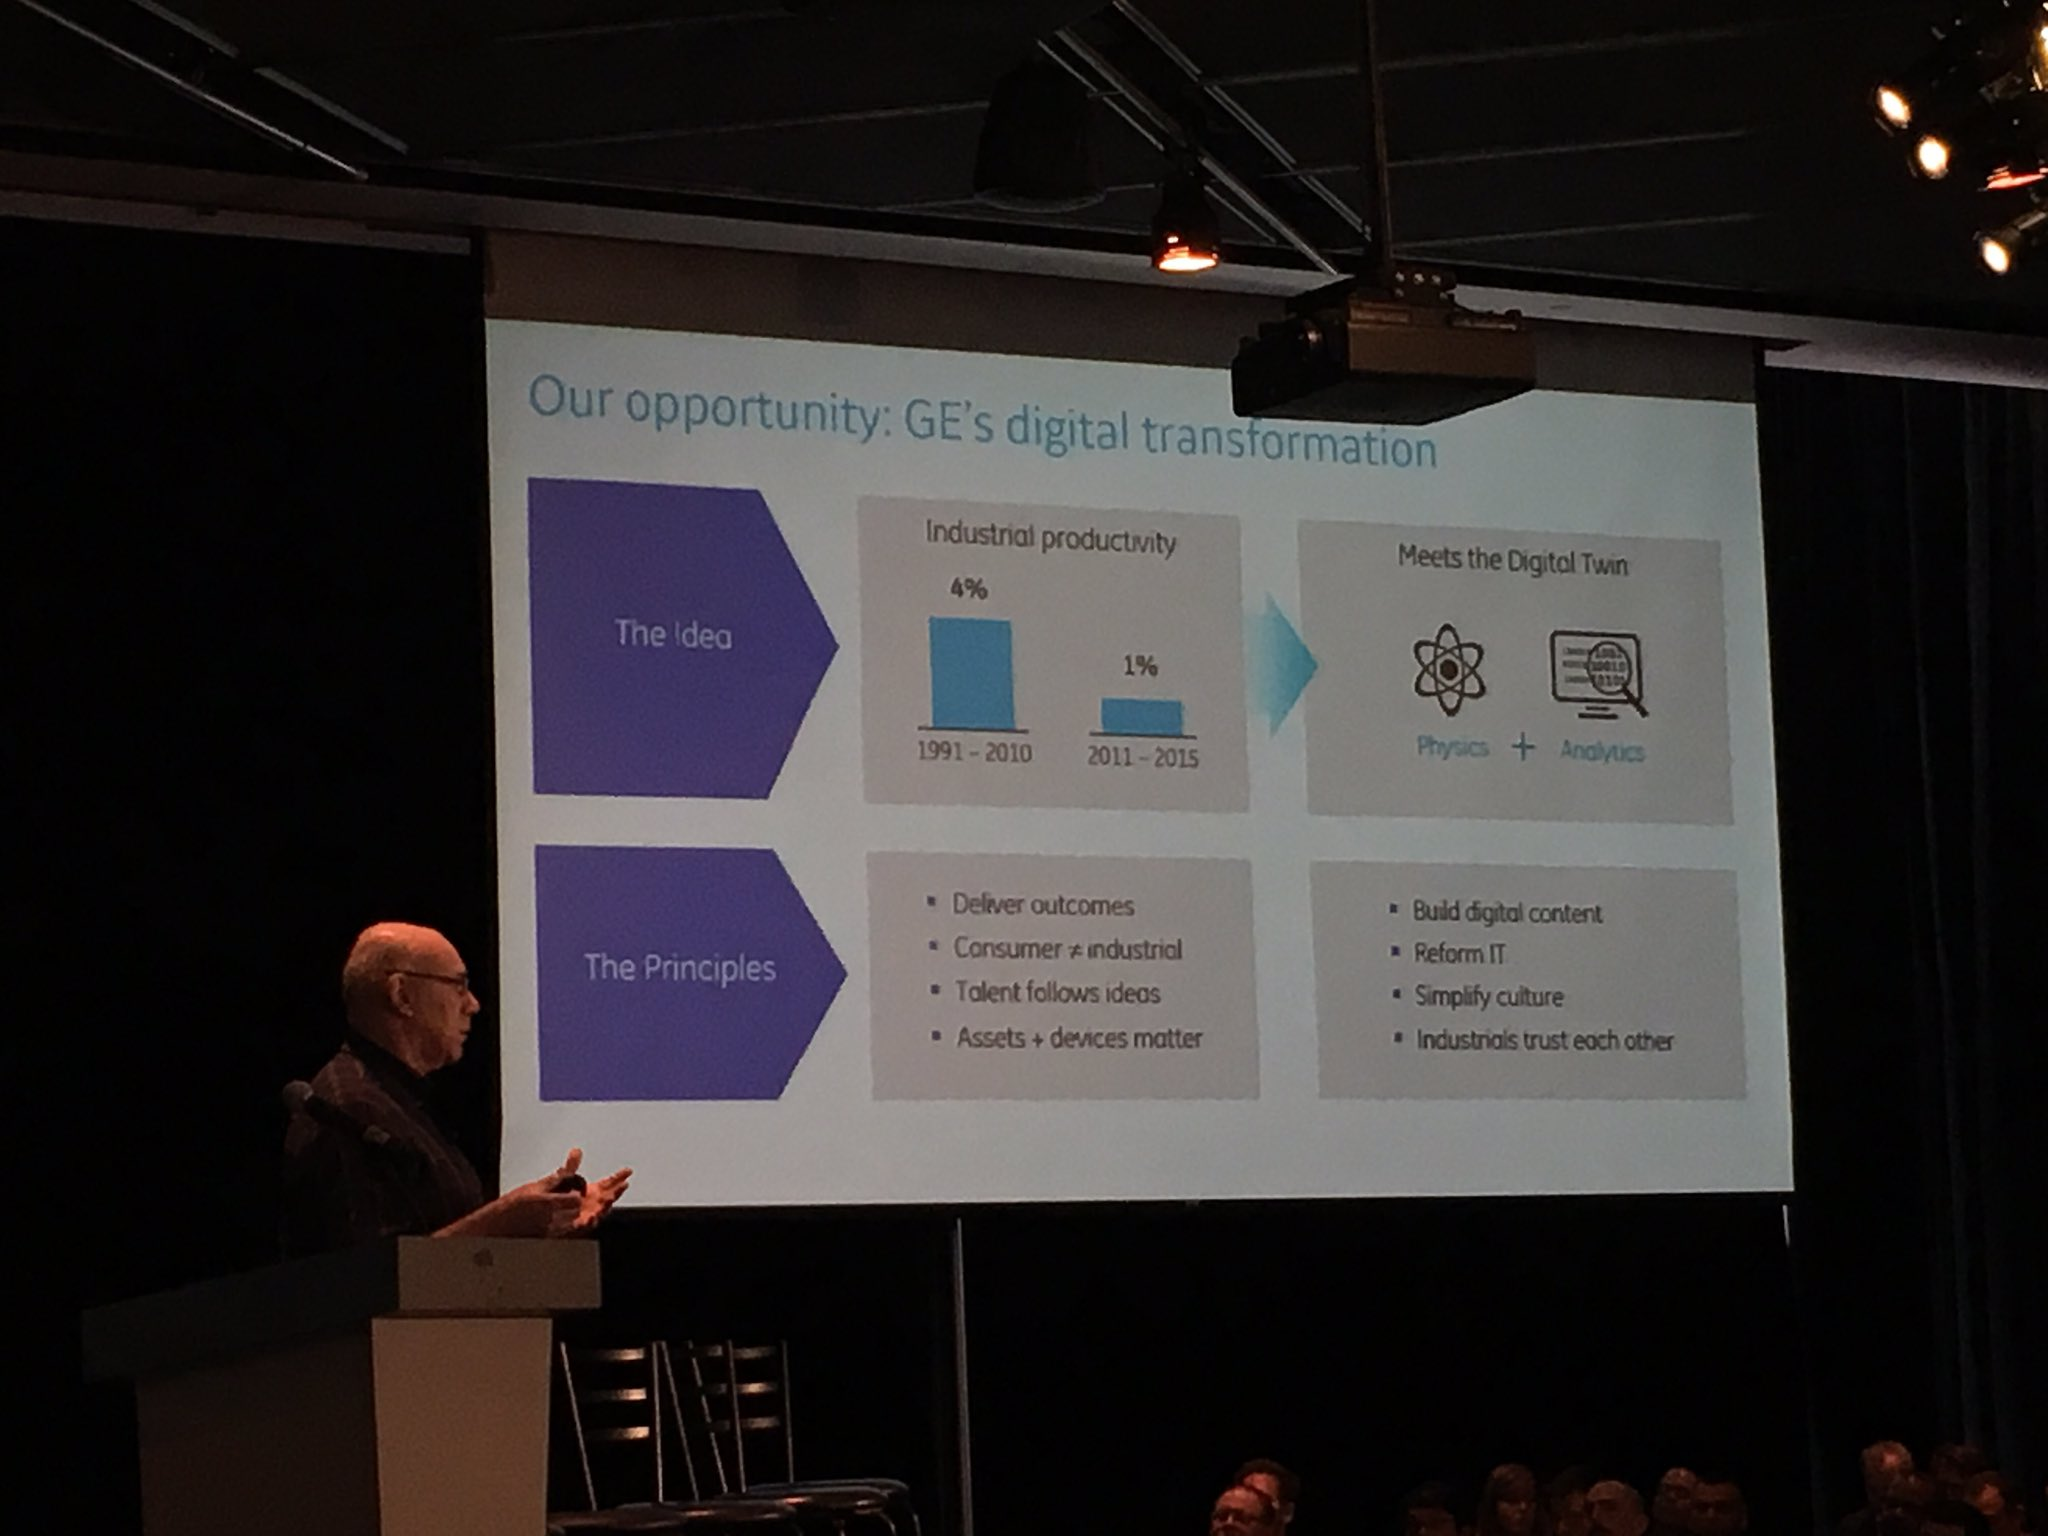 """Harel Kodesh @Predix CTO says """"something is stuck"""" in industrial productivity, @GE_Digital is trying to unstick it. #connectedthings2017 https://t.co/J3tABxArx6"""